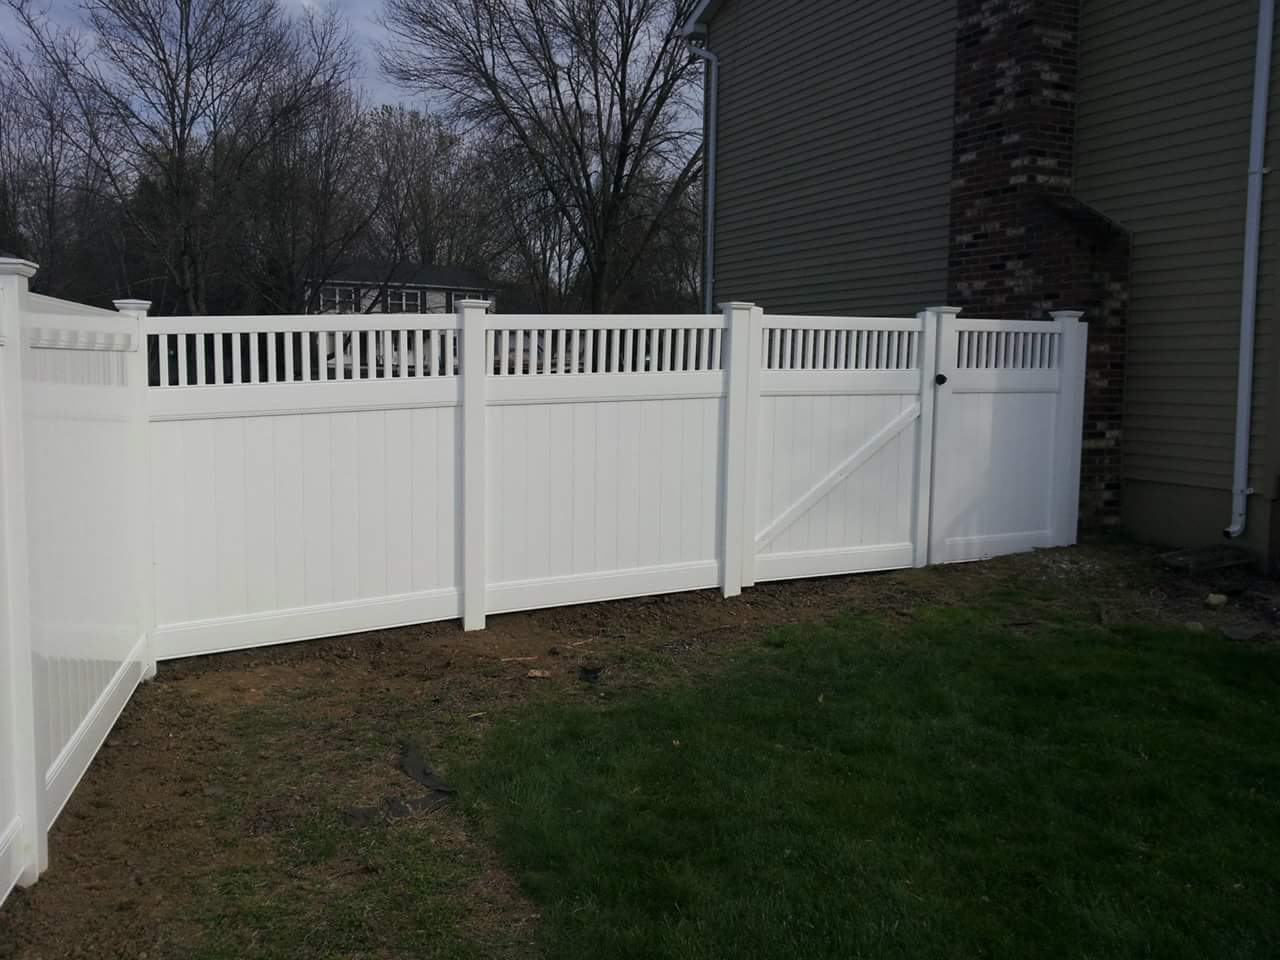 Smc fence central new jersey fence and pool enclosures custom residential closed spindlet top service gate new england caps privacy manalapan residential closed spindle topfronts new england caps 5ft wide service g ate baanklon Gallery